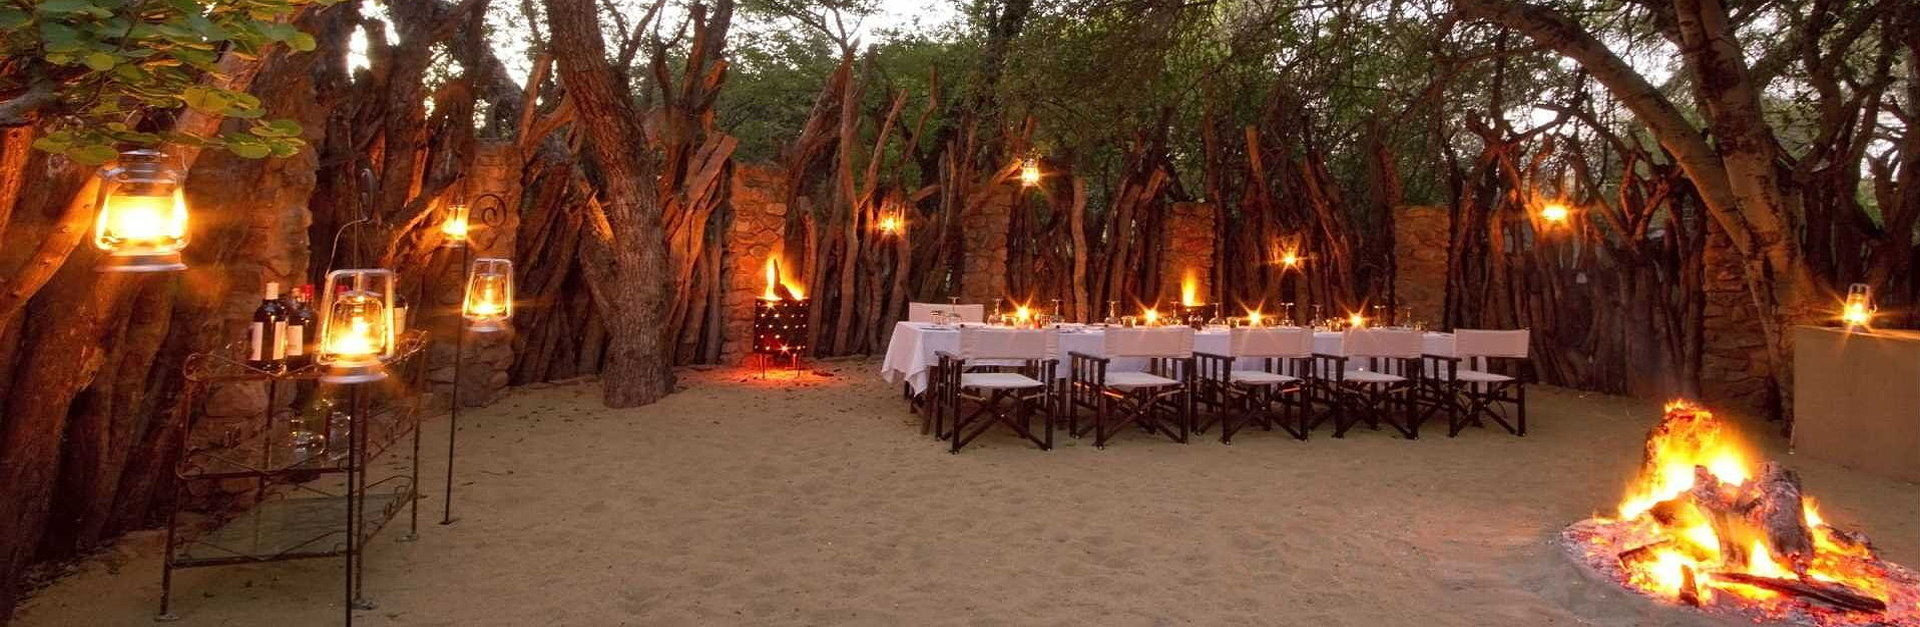 Tailormade Safaris Boma Dinner